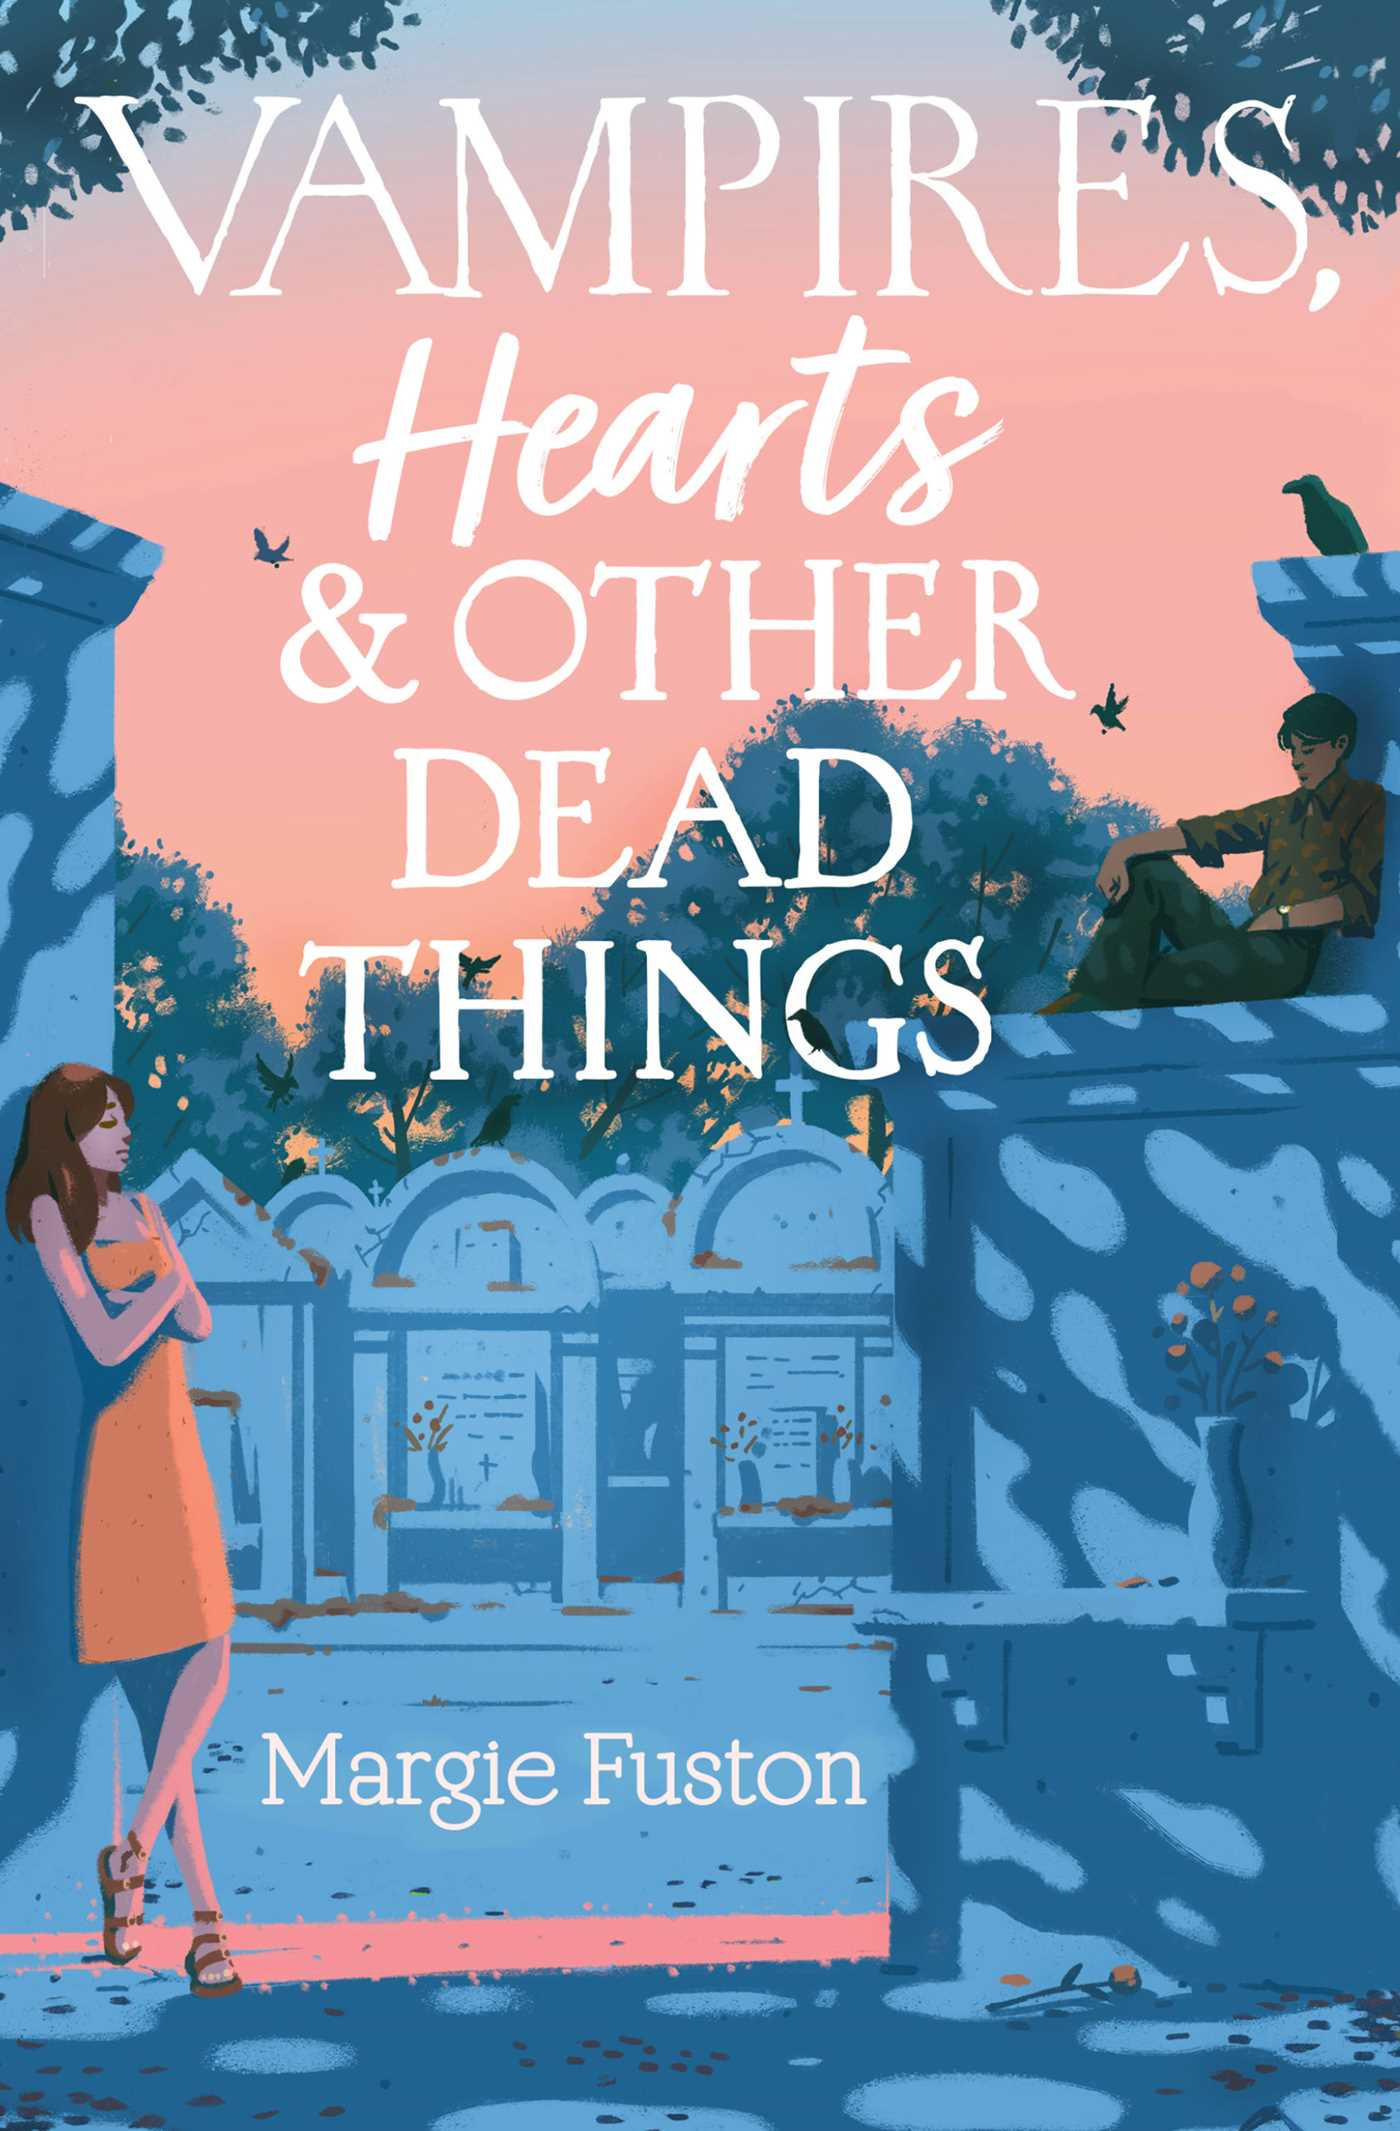 Vampires, Hearts, & Other Dead Things by Margie Fuston